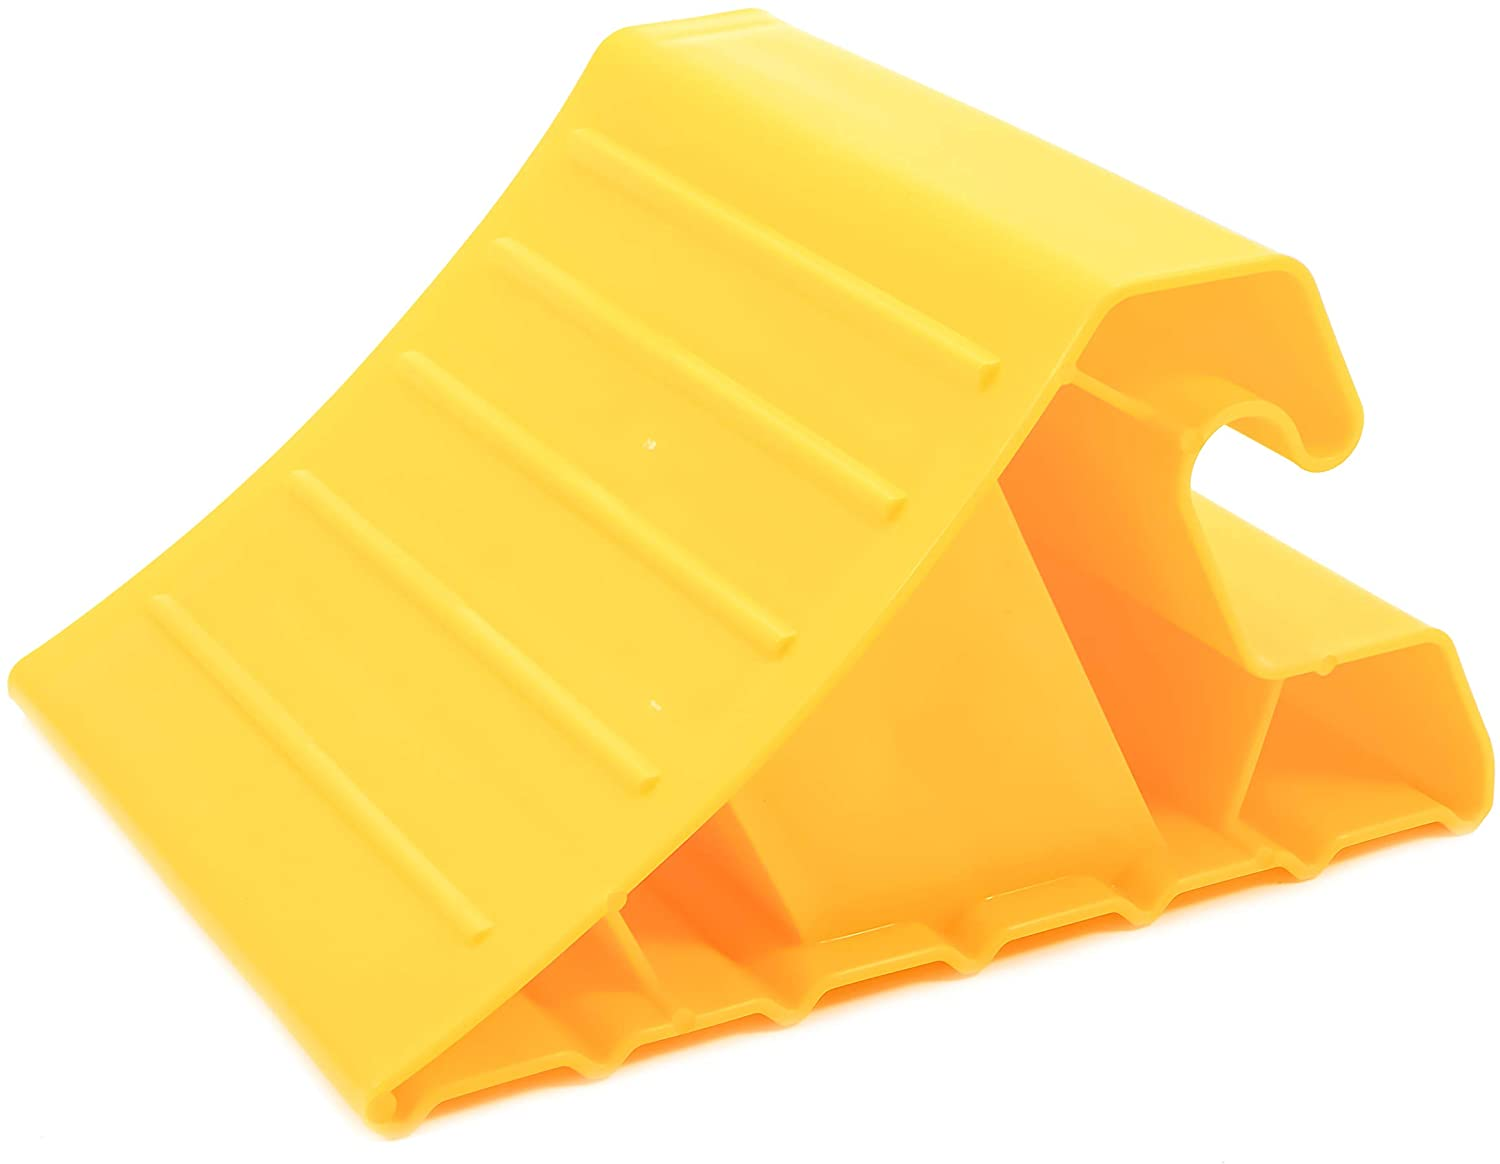 B0007TR4CQ Camco Super Wheel Chock - Helps Keep Your Trailer in Place So You Can Re-Hitch - (44492) 61EnObp6RxL